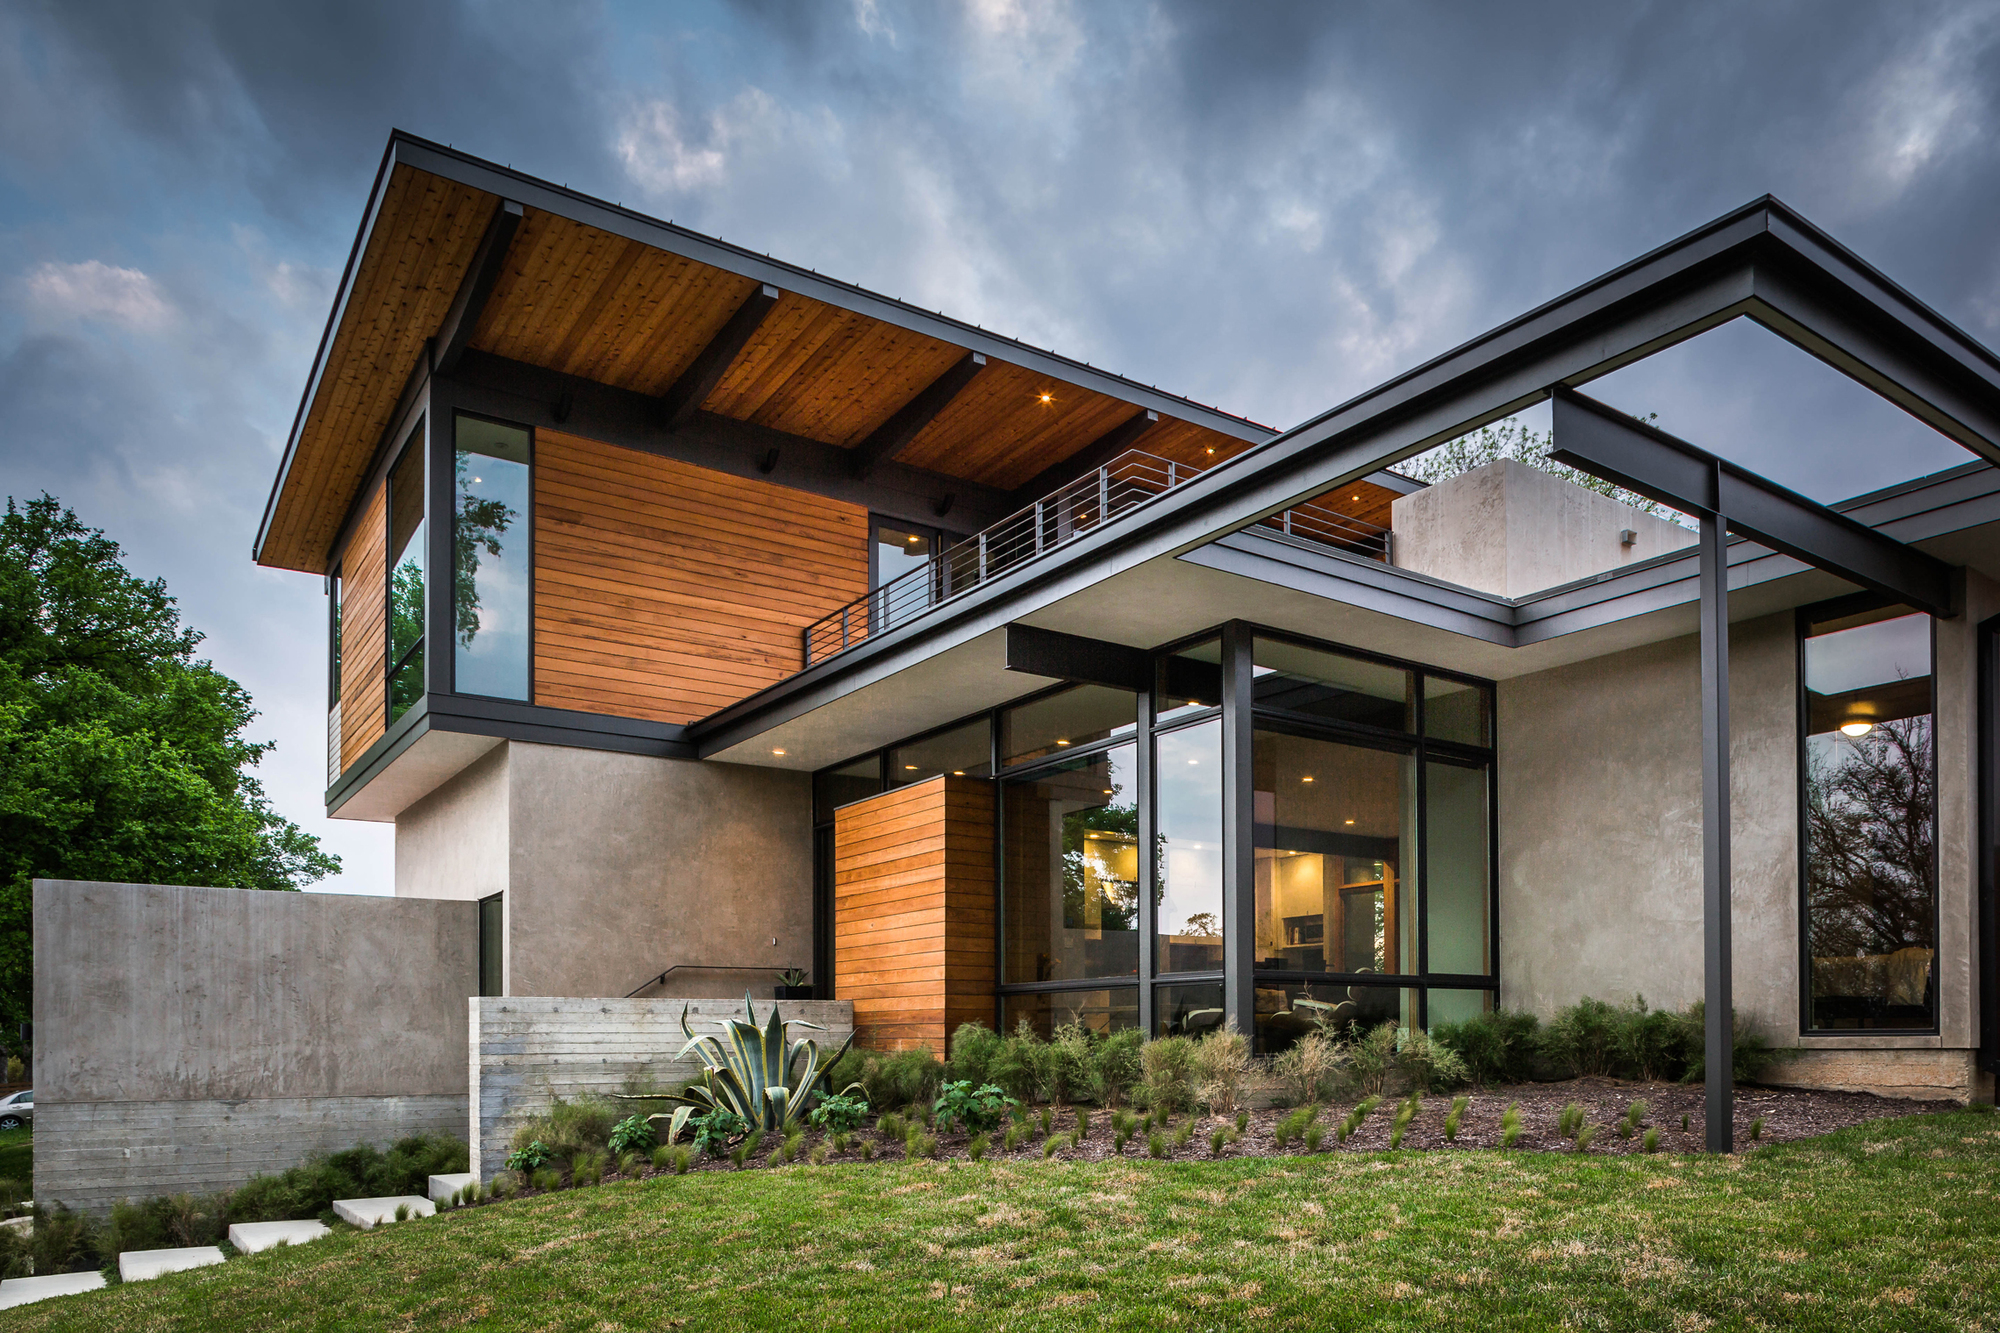 537e98b3c07a80946d0001d8_paramount-residence-a-parallel-architecture_02